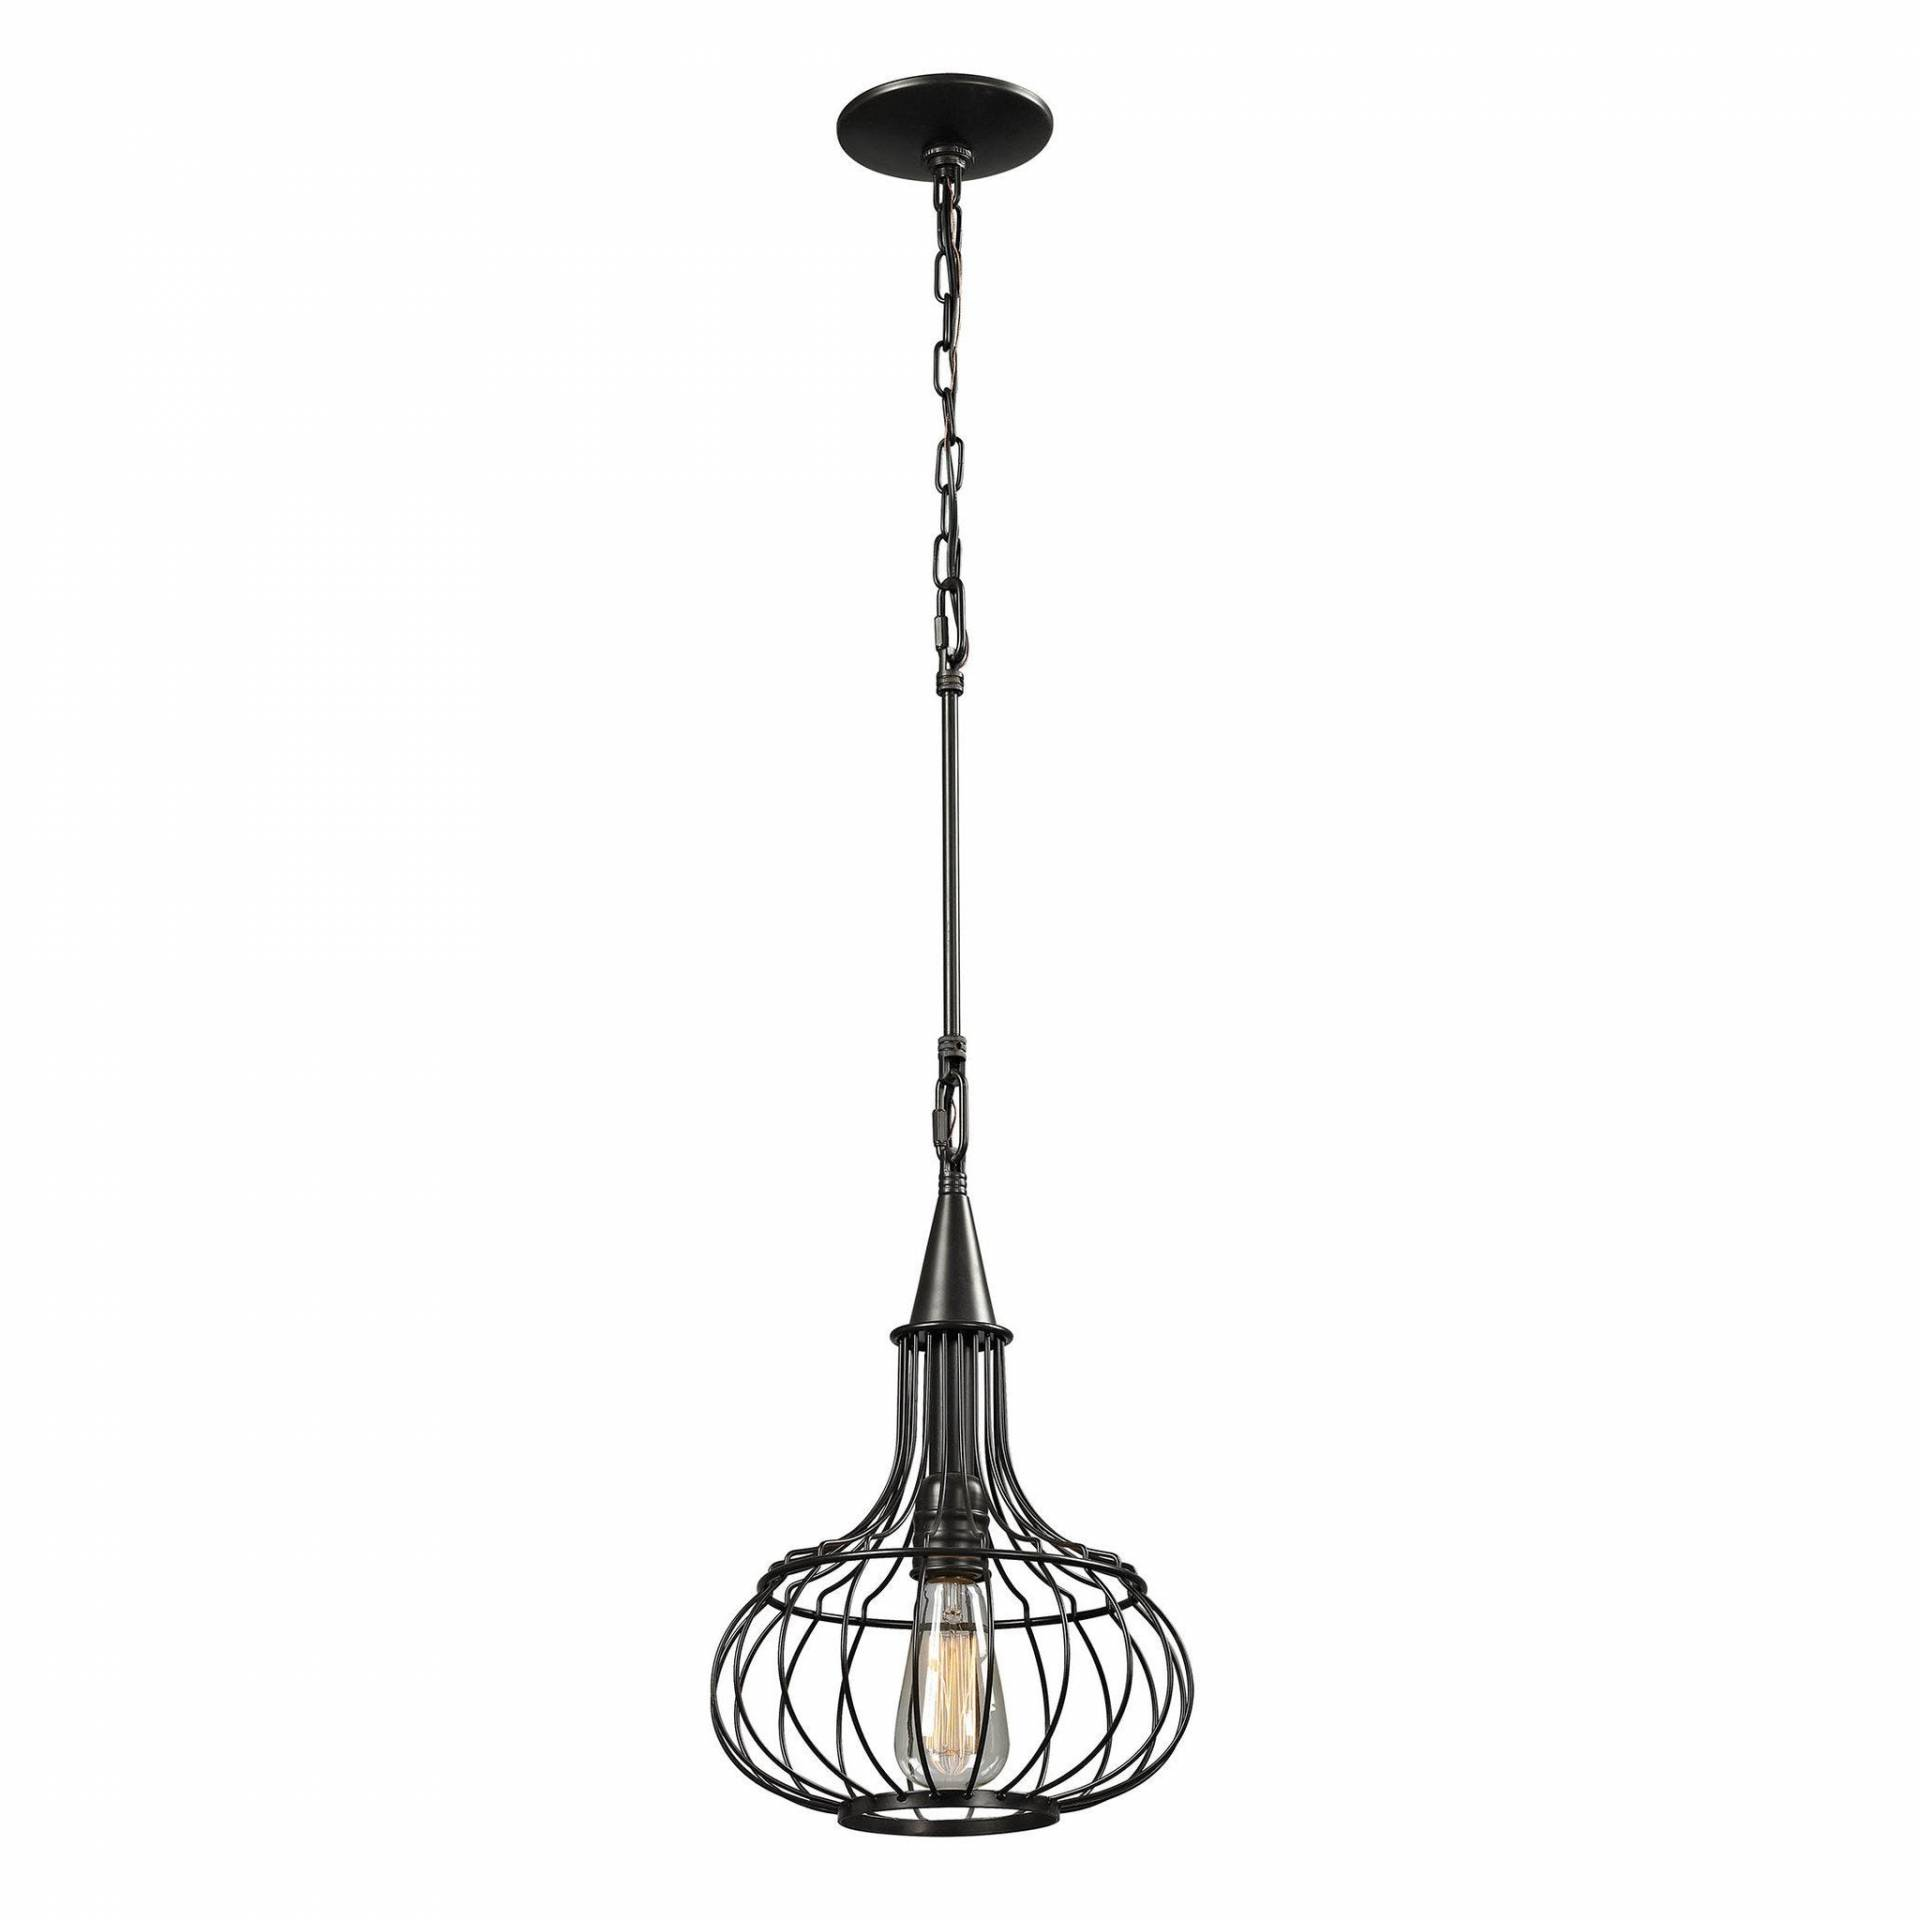 ELK Lighting 14192/1 Yardley Collection Oil Rubbed Bronze Finish from ELK Lighting